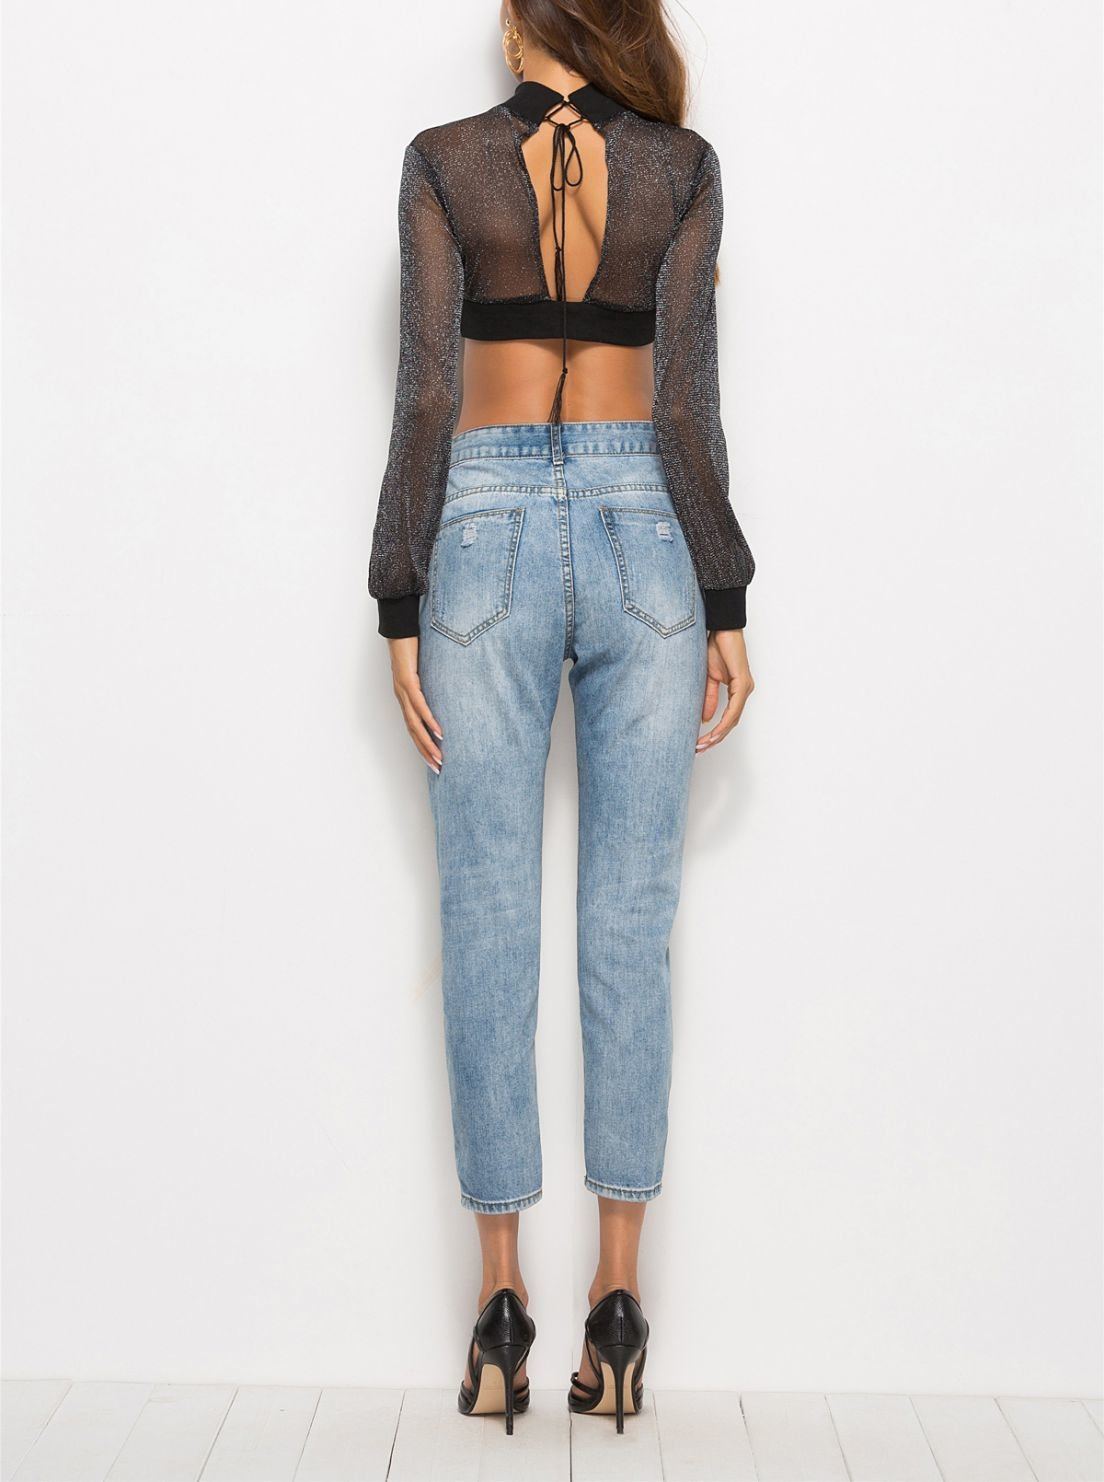 Cropped Top with Sheer Metallic Sleeves and Yoke